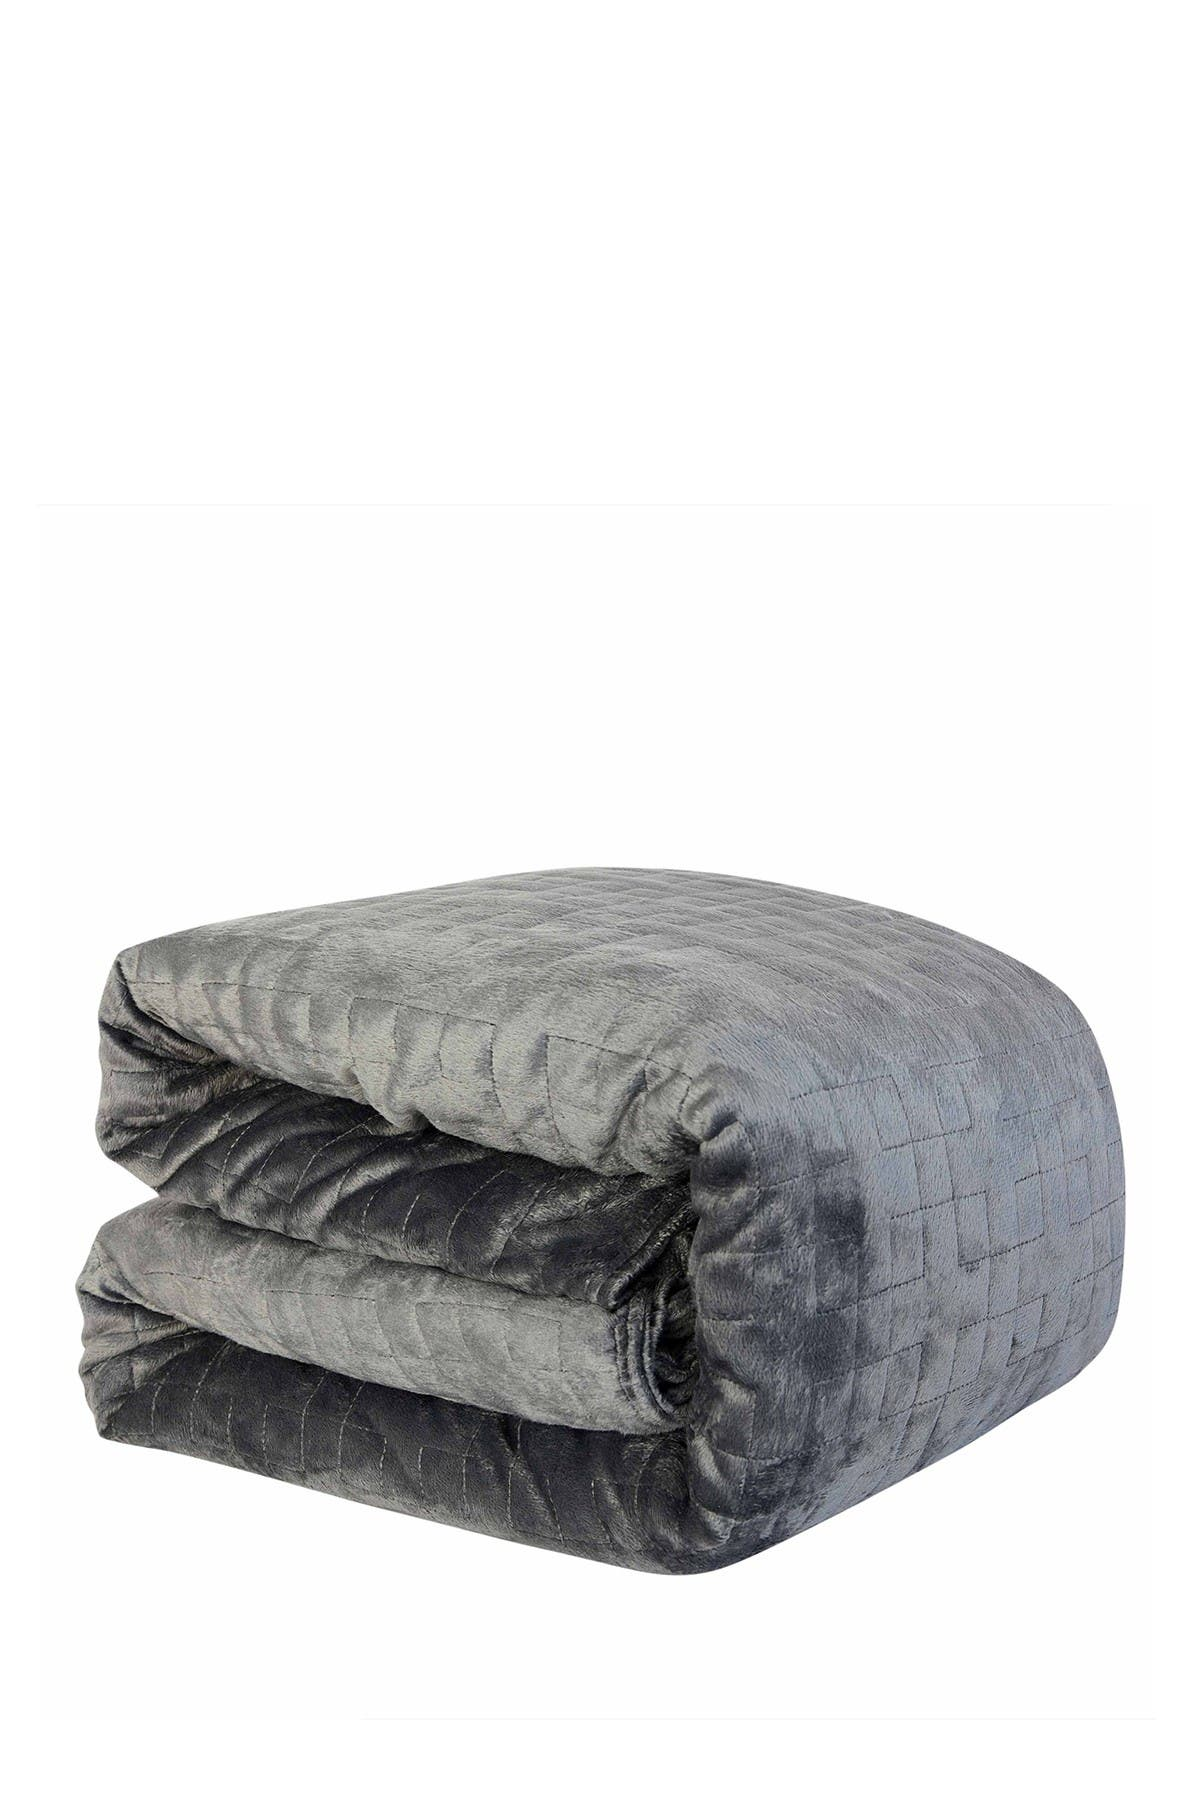 Image of DREAM THEORY Microfiber 15lb. Weighted Blanket & Duvet Cover - Grey